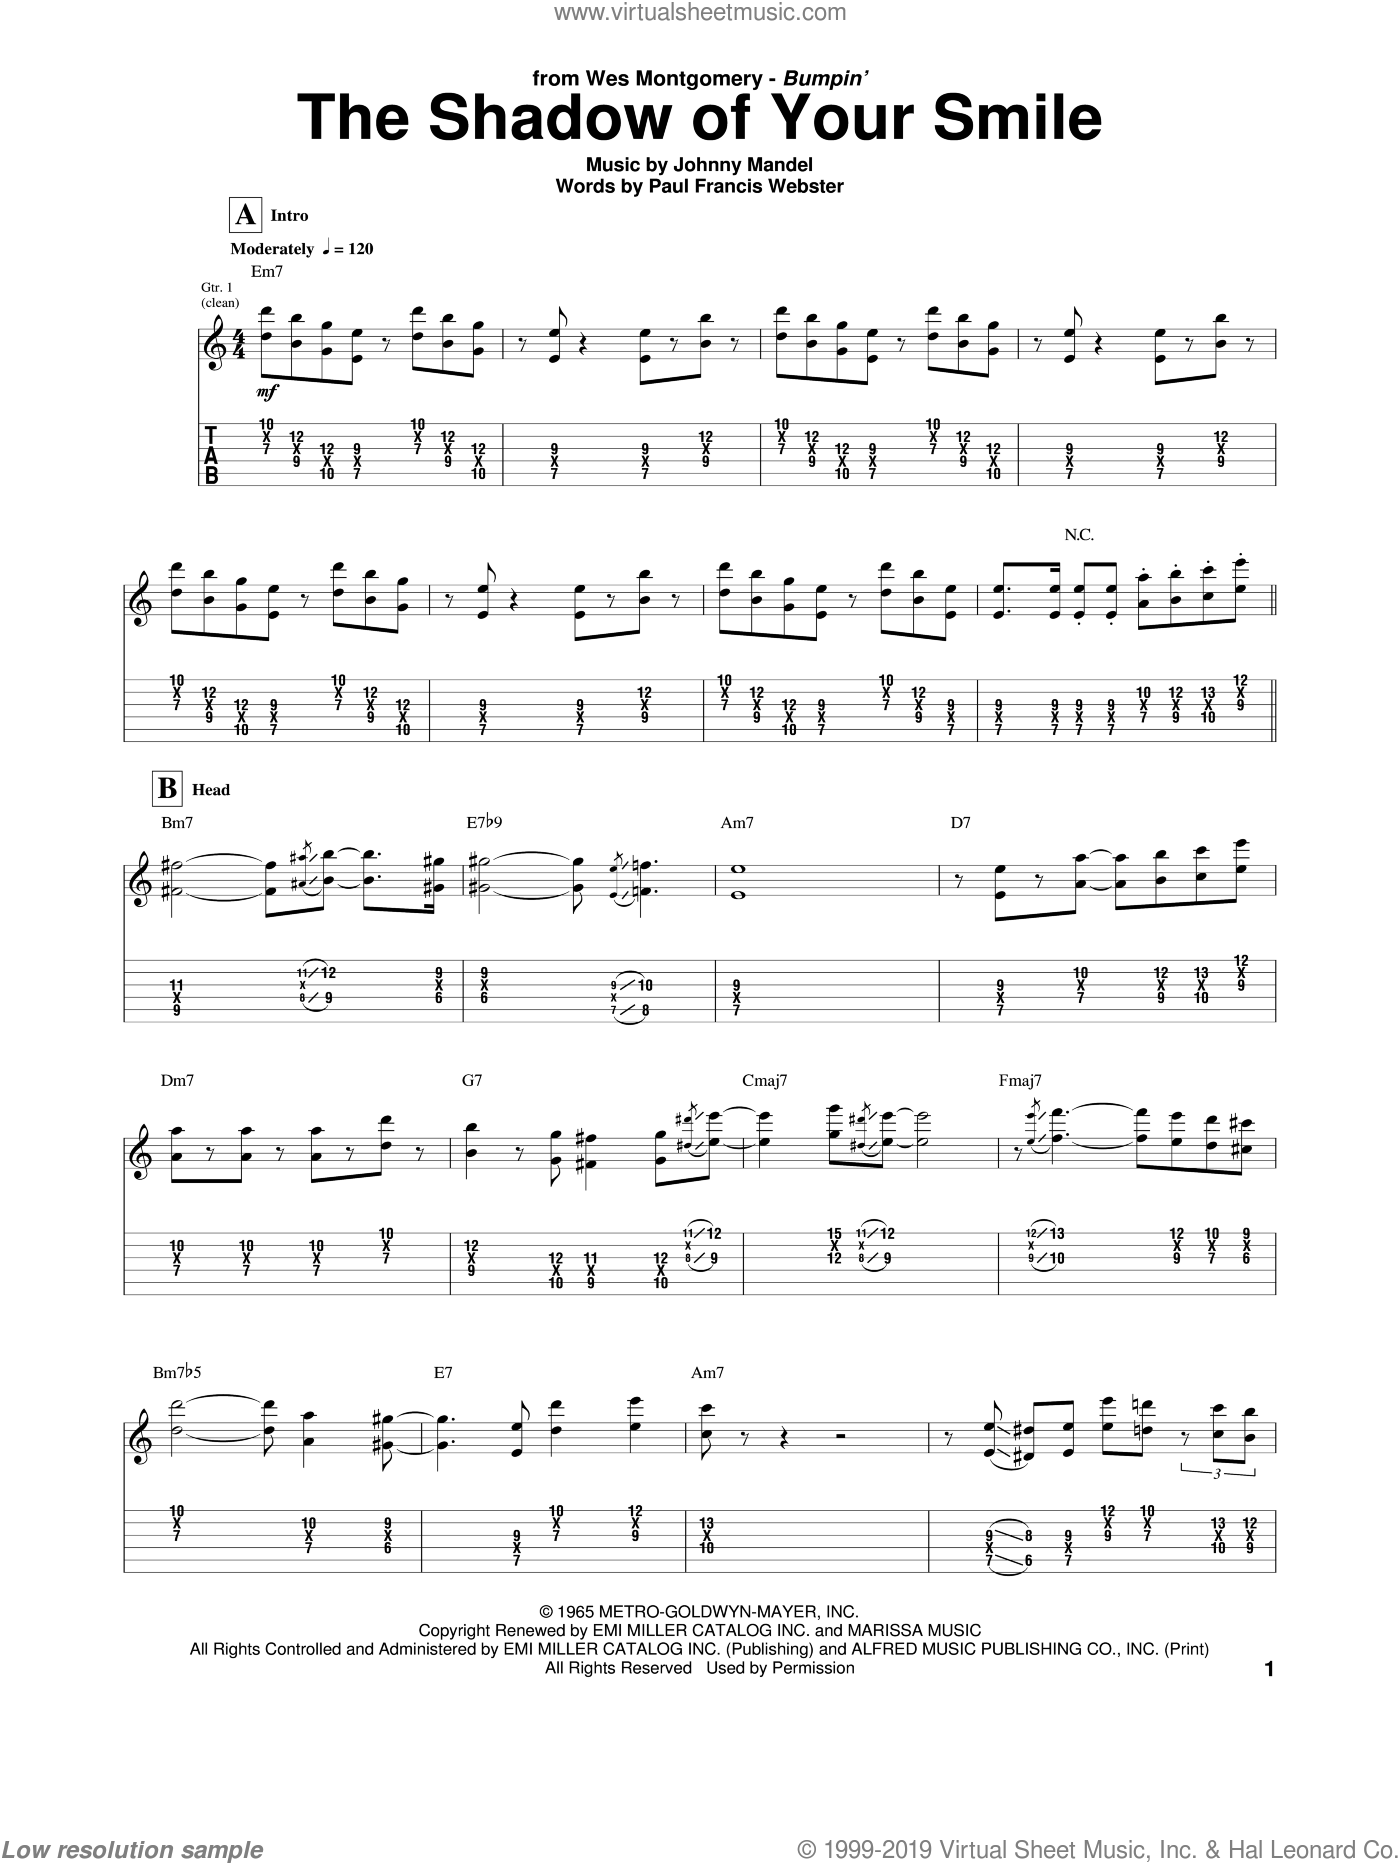 The Shadow Of Your Smile sheet music for guitar (tablature) by Wes Montgomery, intermediate. Score Image Preview.